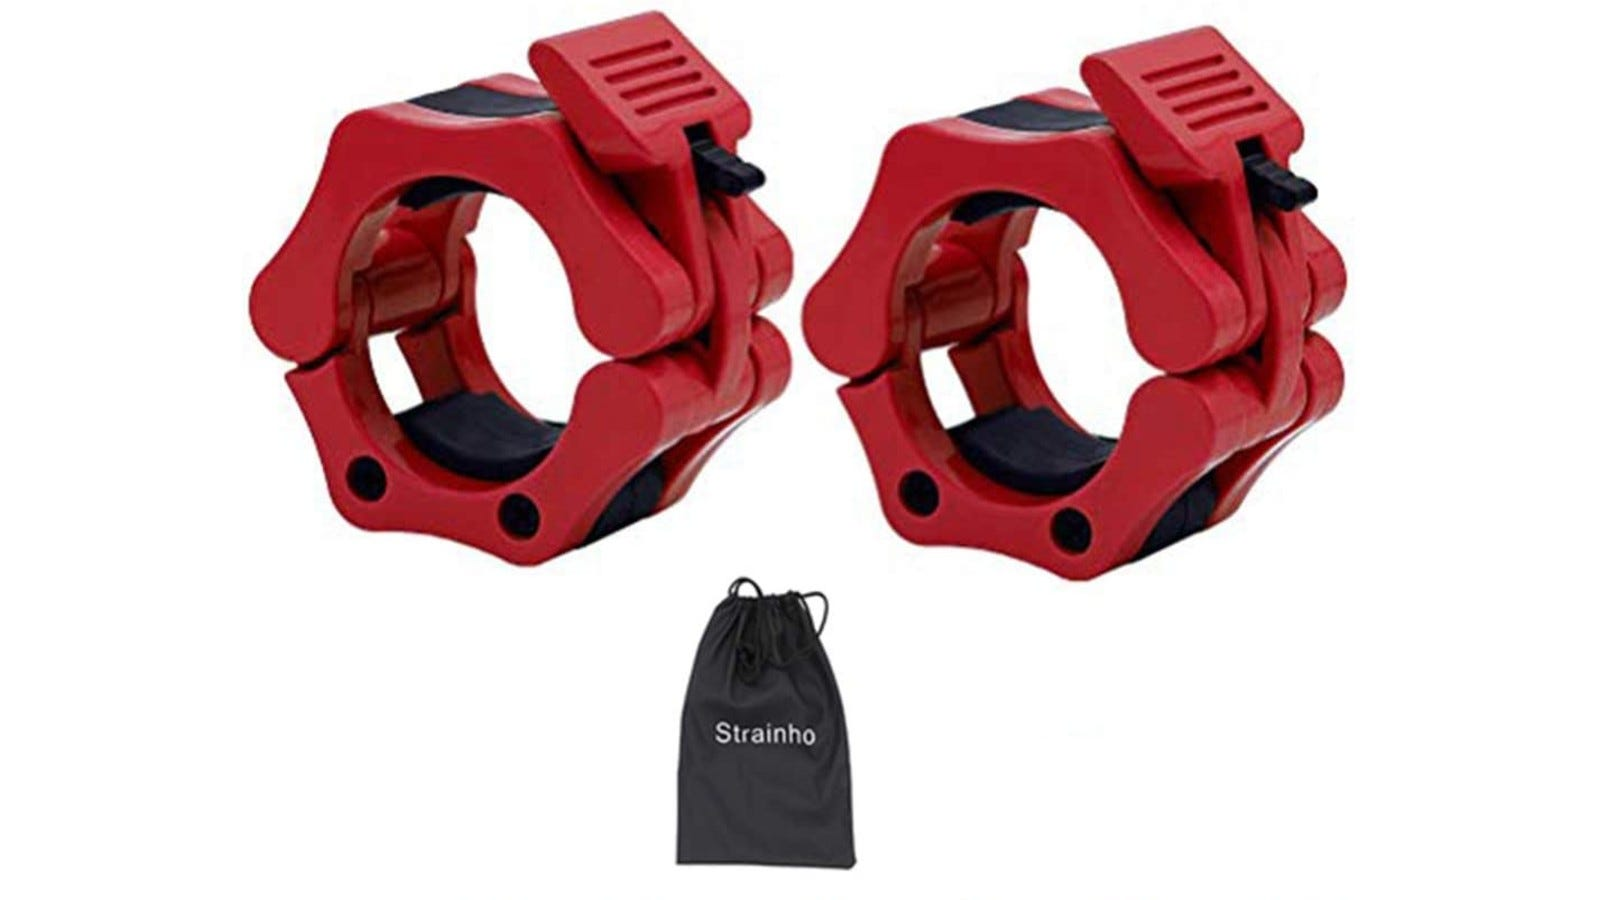 two red barbell clamps with a carrying bag shown